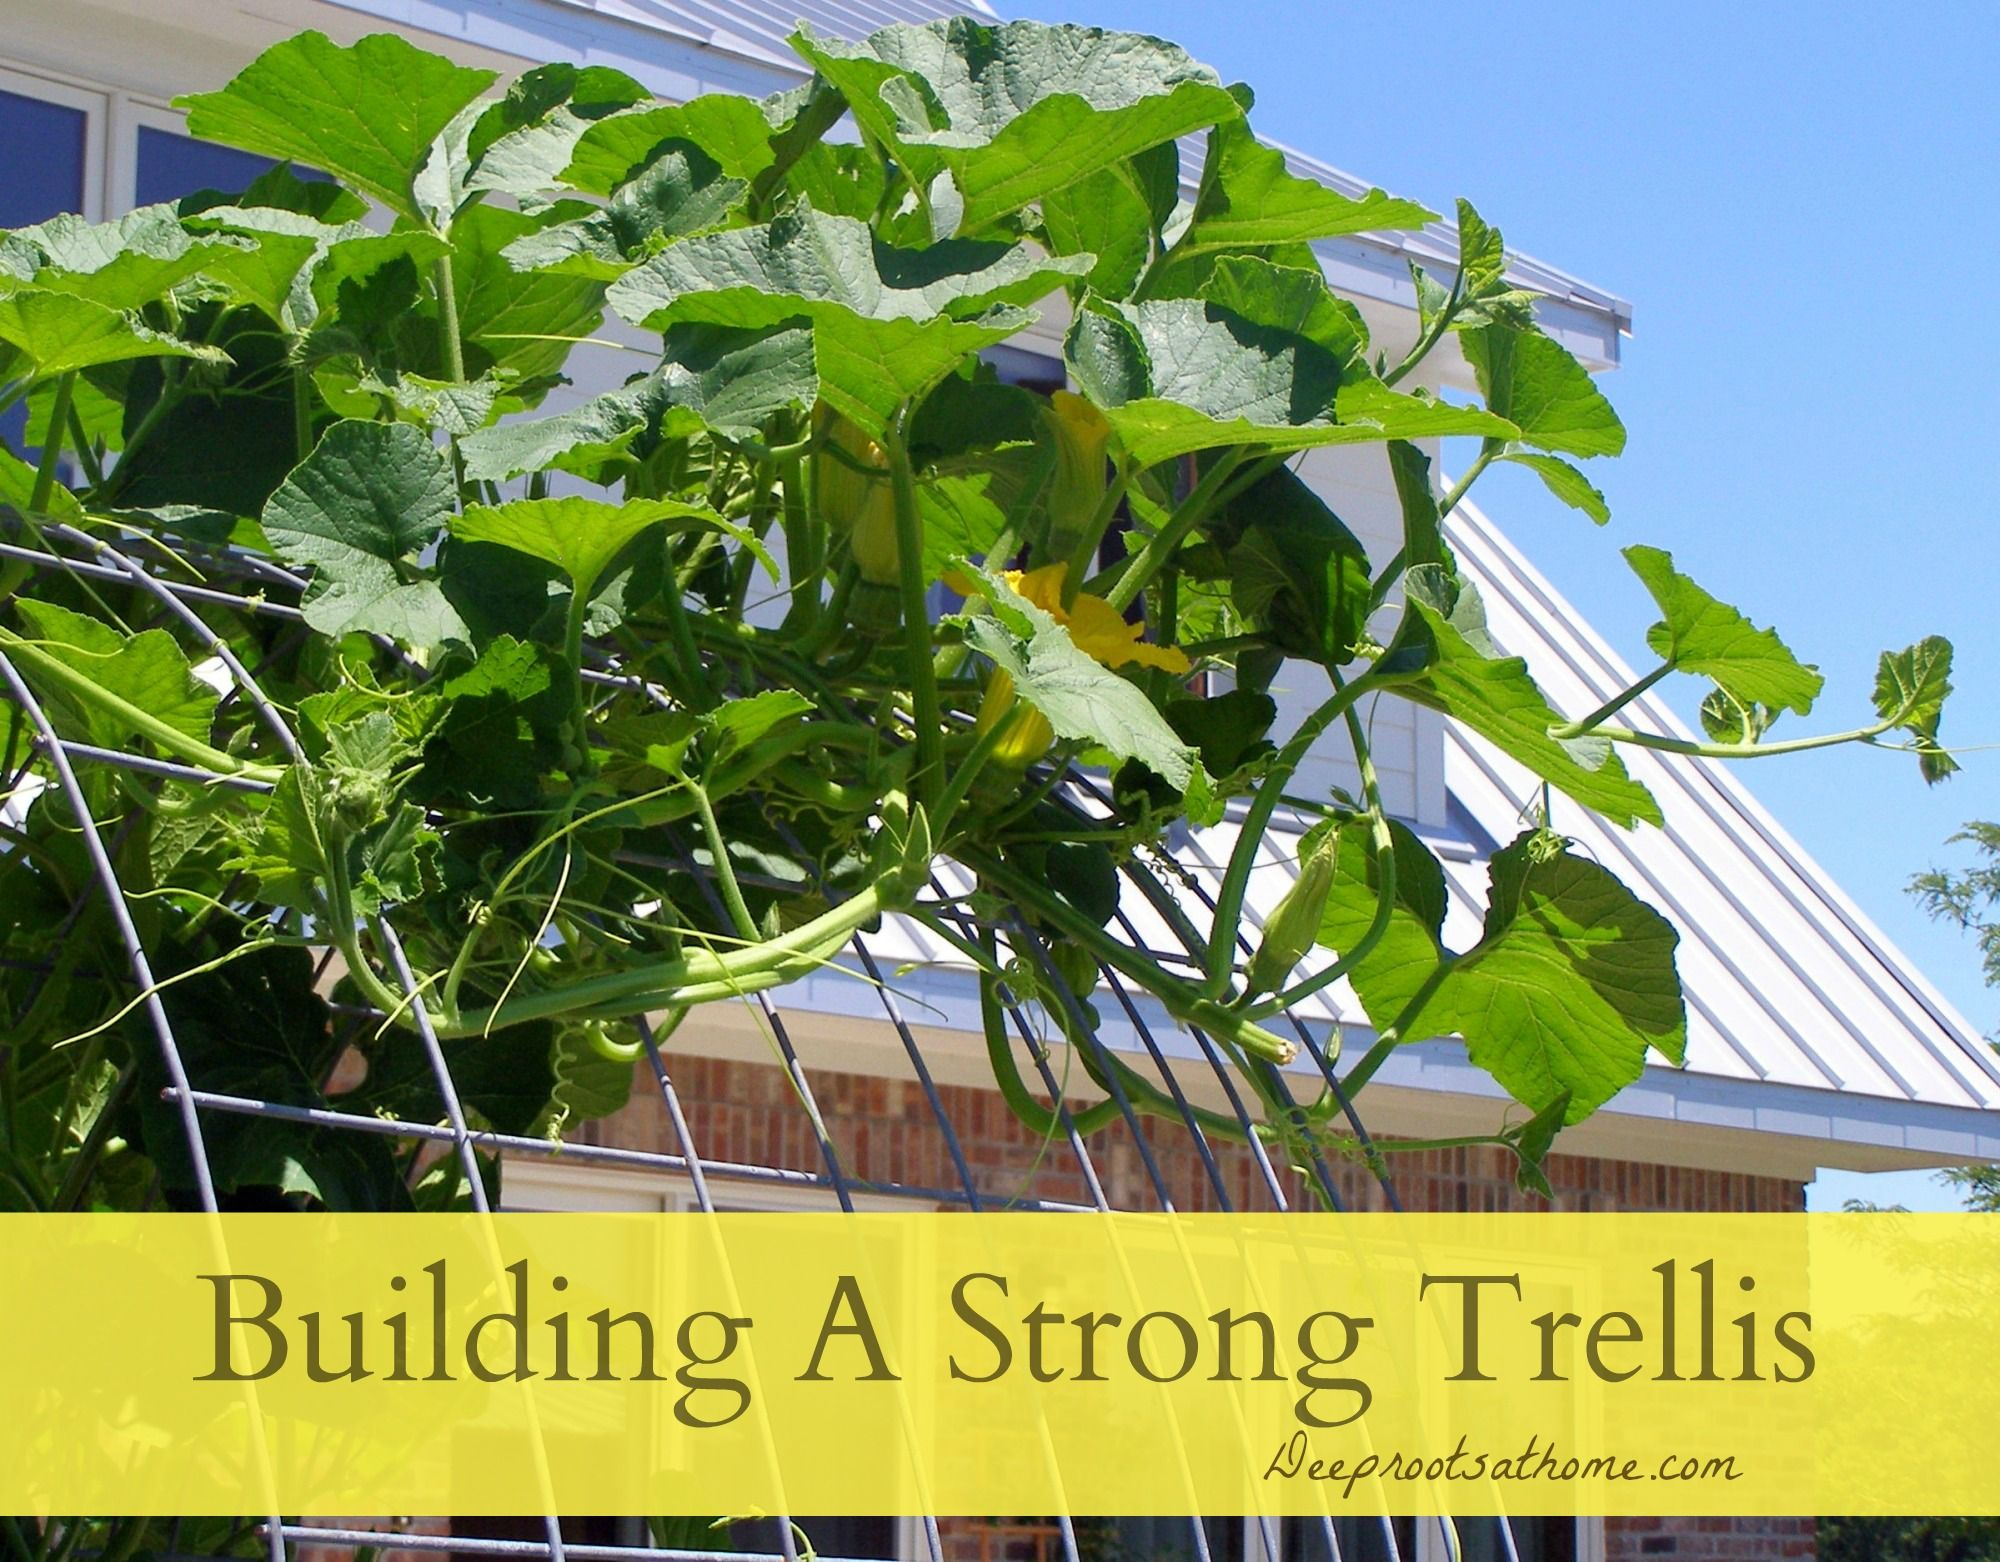 Building A Strong Trellis, Grow Cantaloupes, Melons, Squash, Gourds,  Climbers,